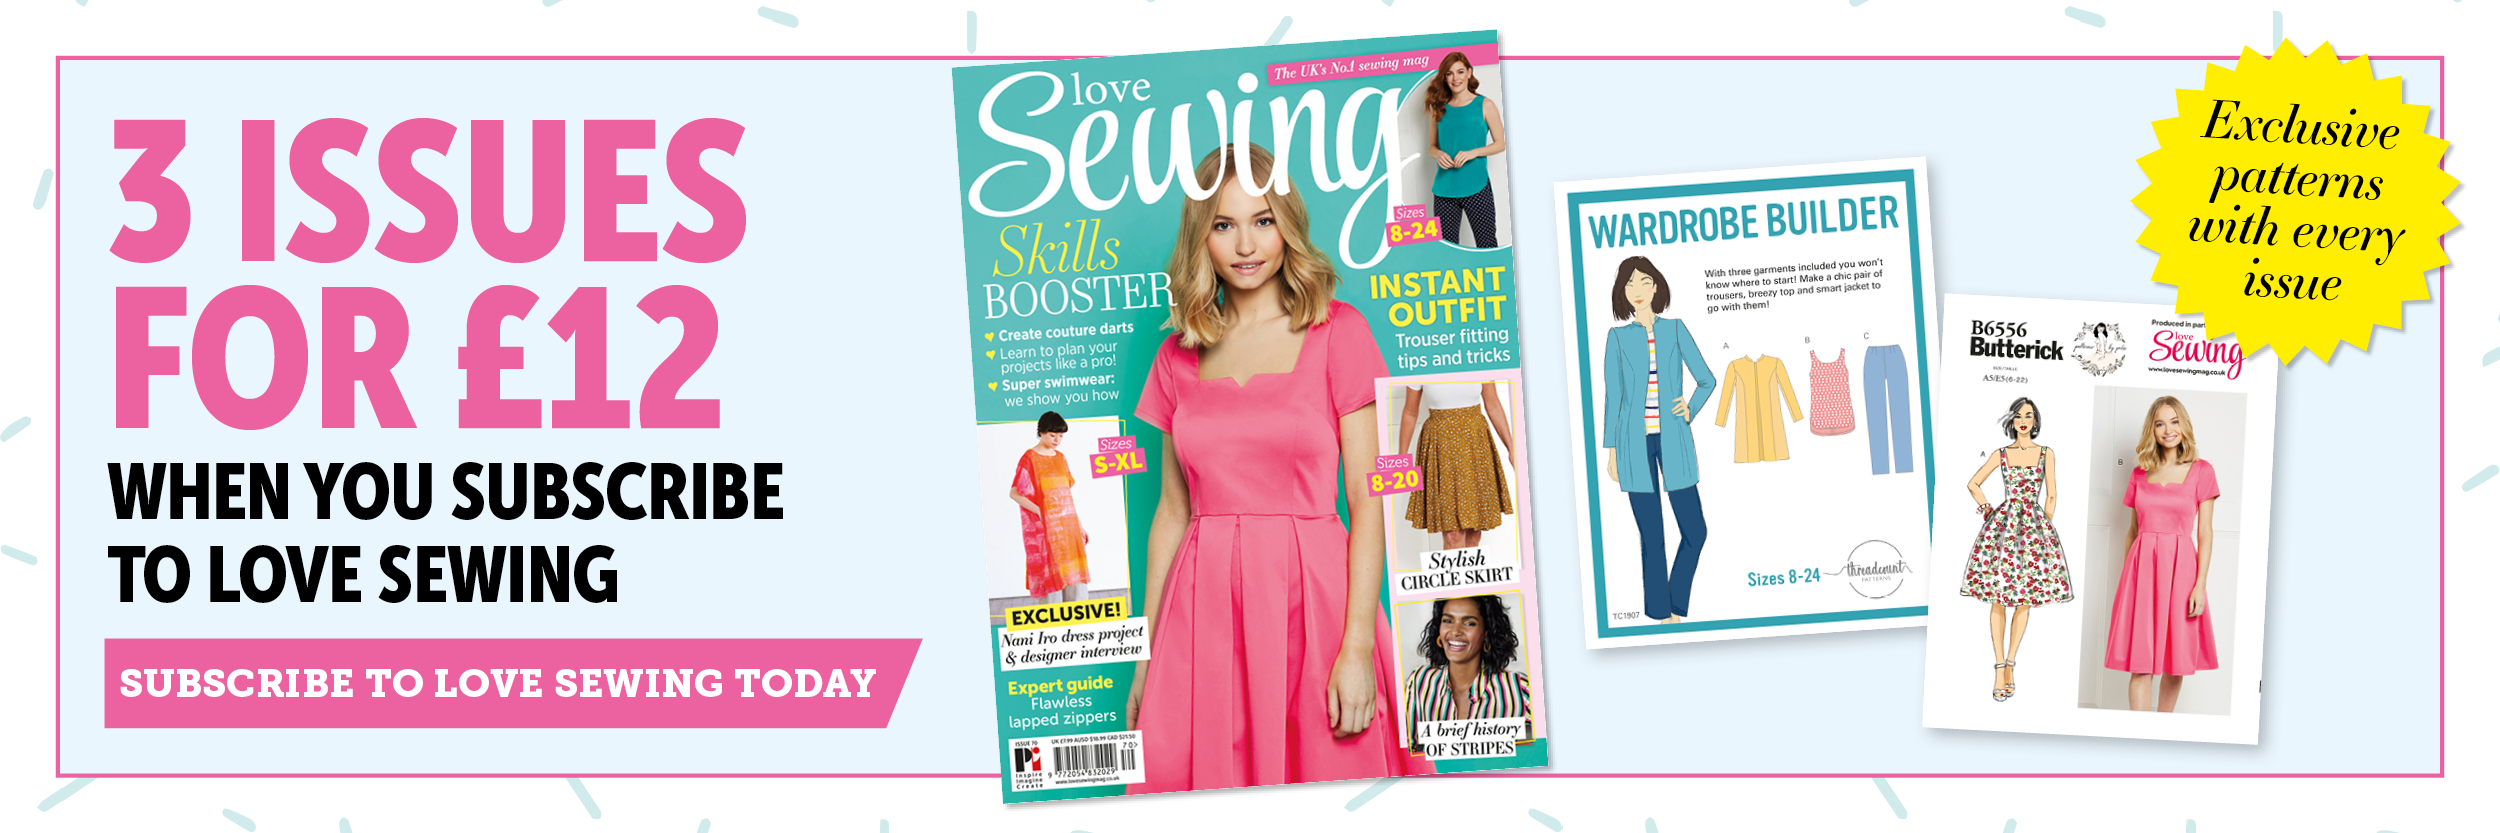 Love Sewing Magazine Offer